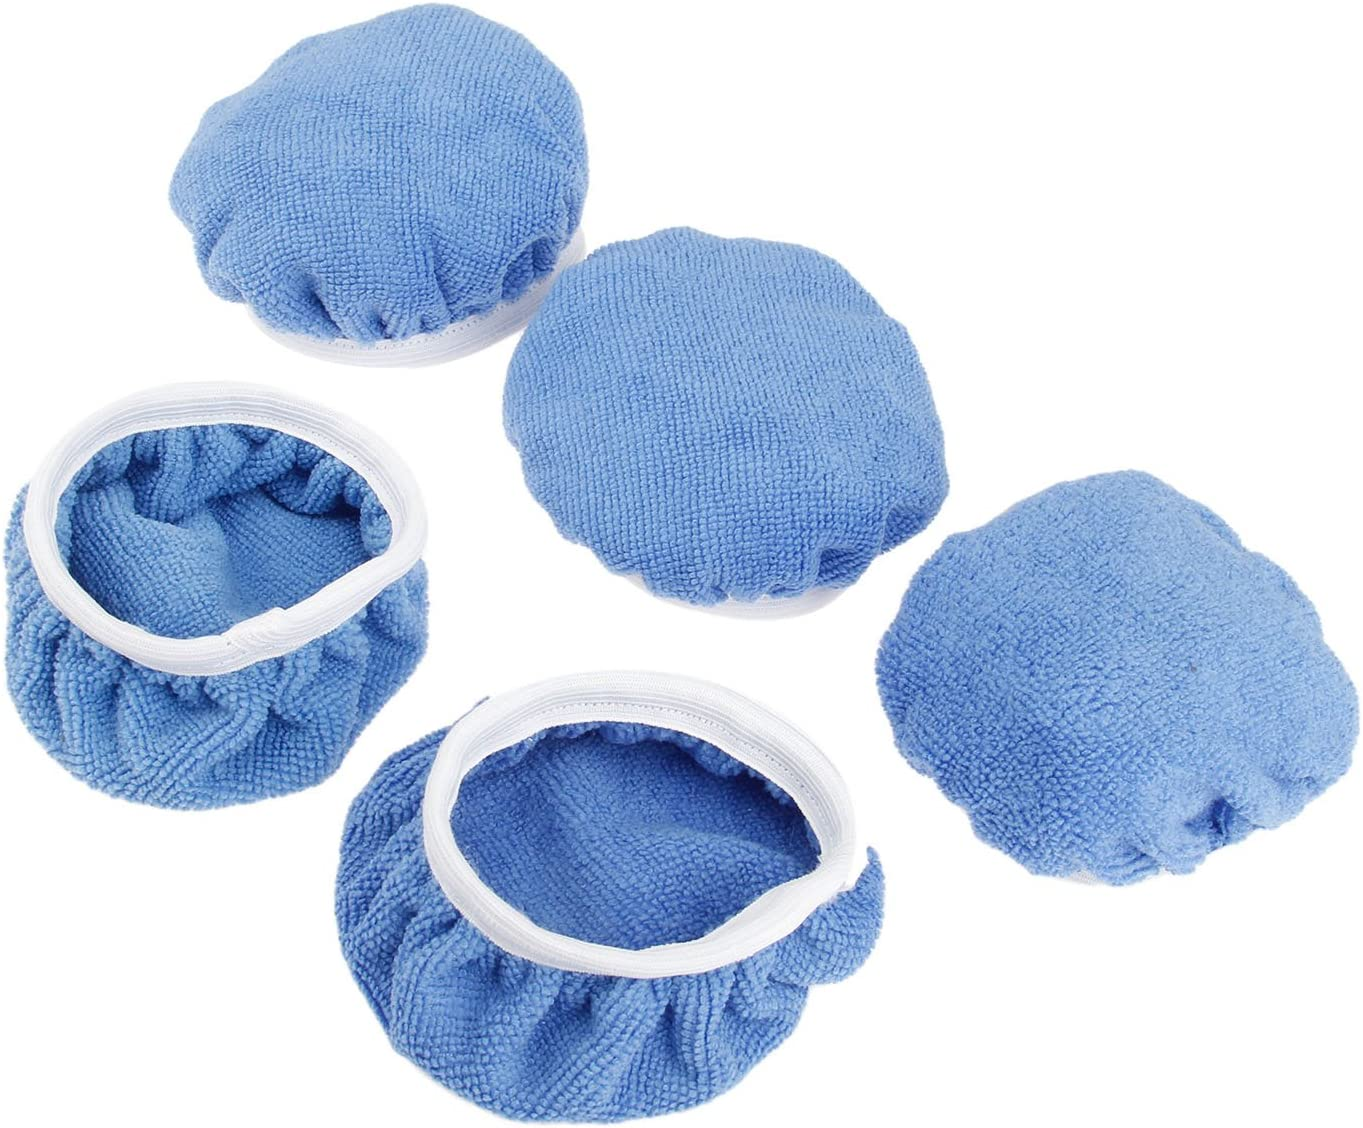 5 Packs Polishing Bonnets 5 to 6 Inches Polisher Pad Bonnet Buffing Pad Cover Soft Microfiber Car Polishing Bonnet Pads for Car Polisher